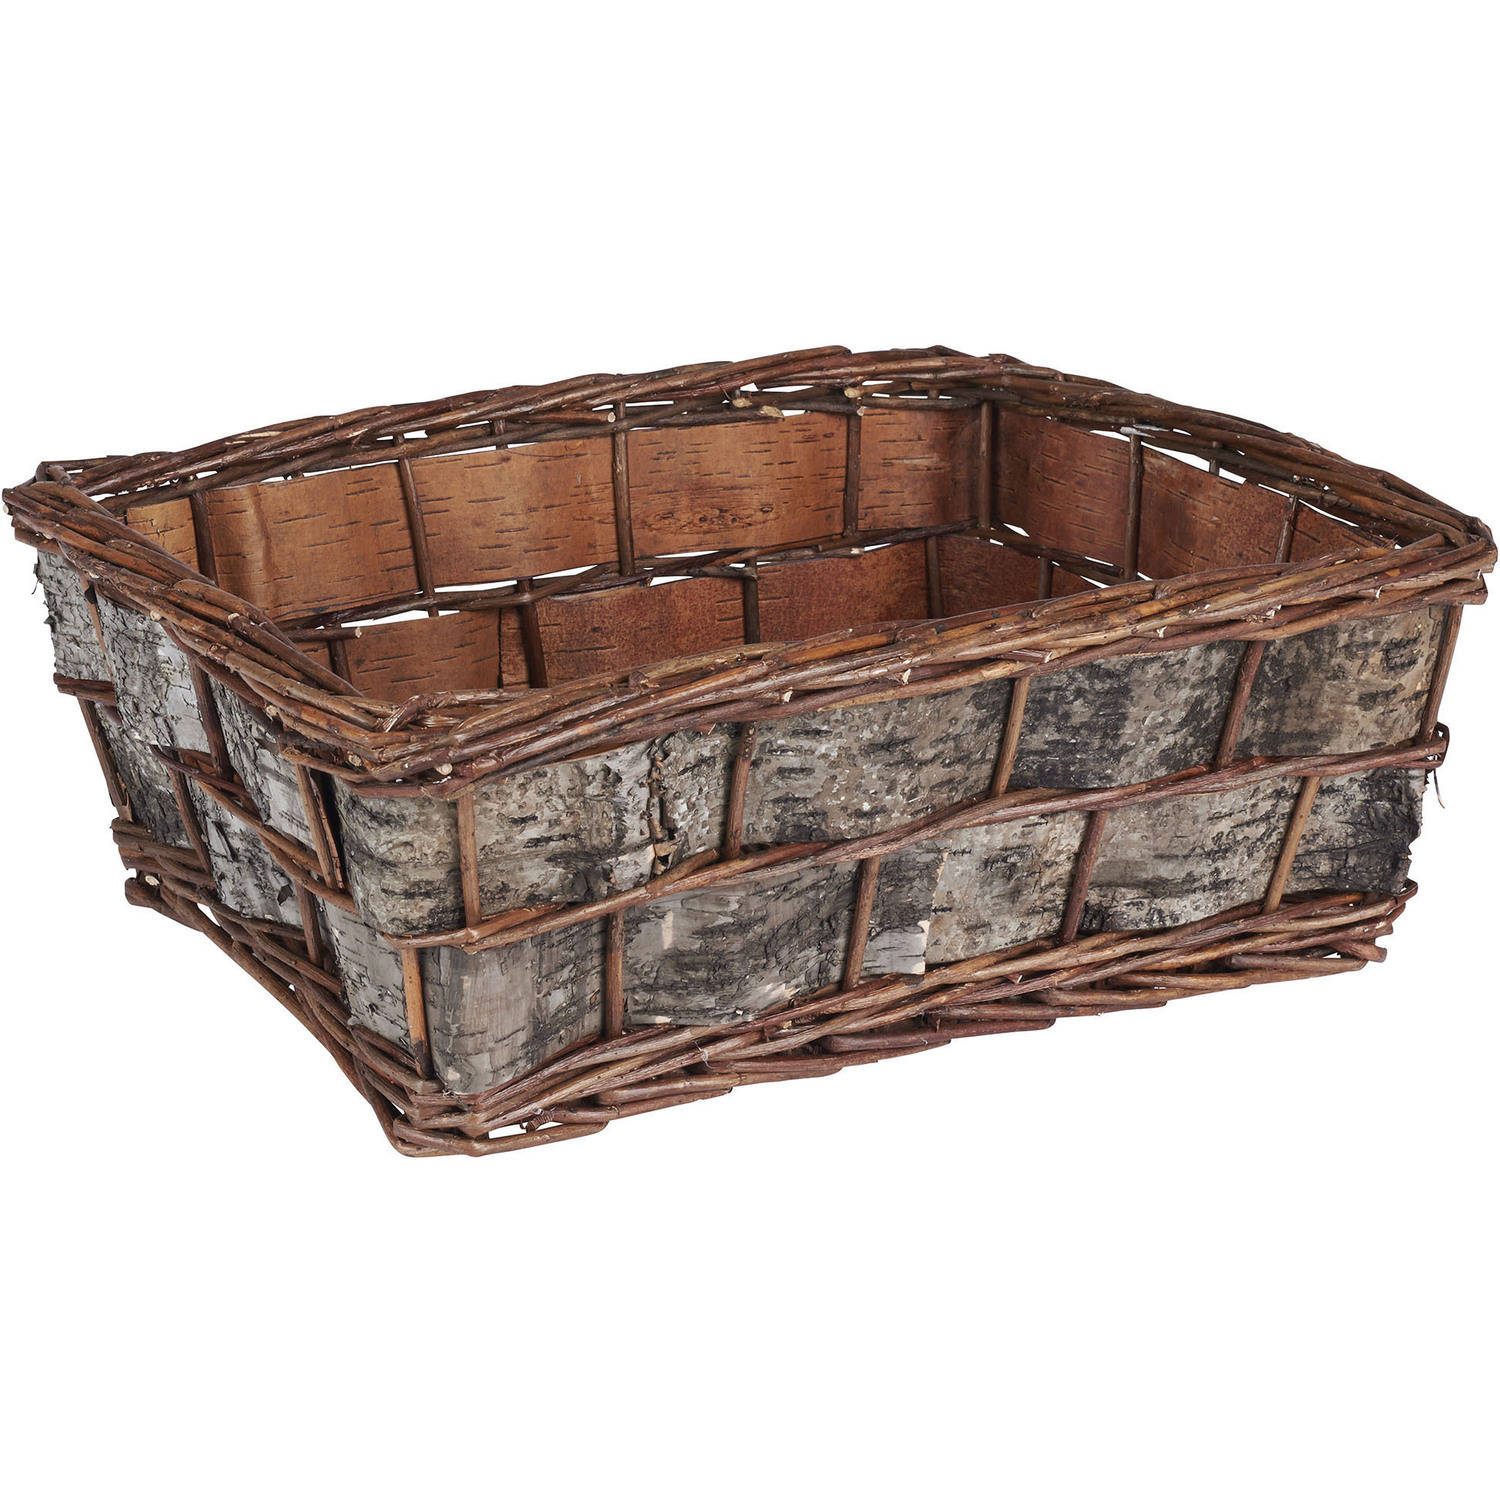 Household Essentials Birch Bark Decorative Wicker Basket